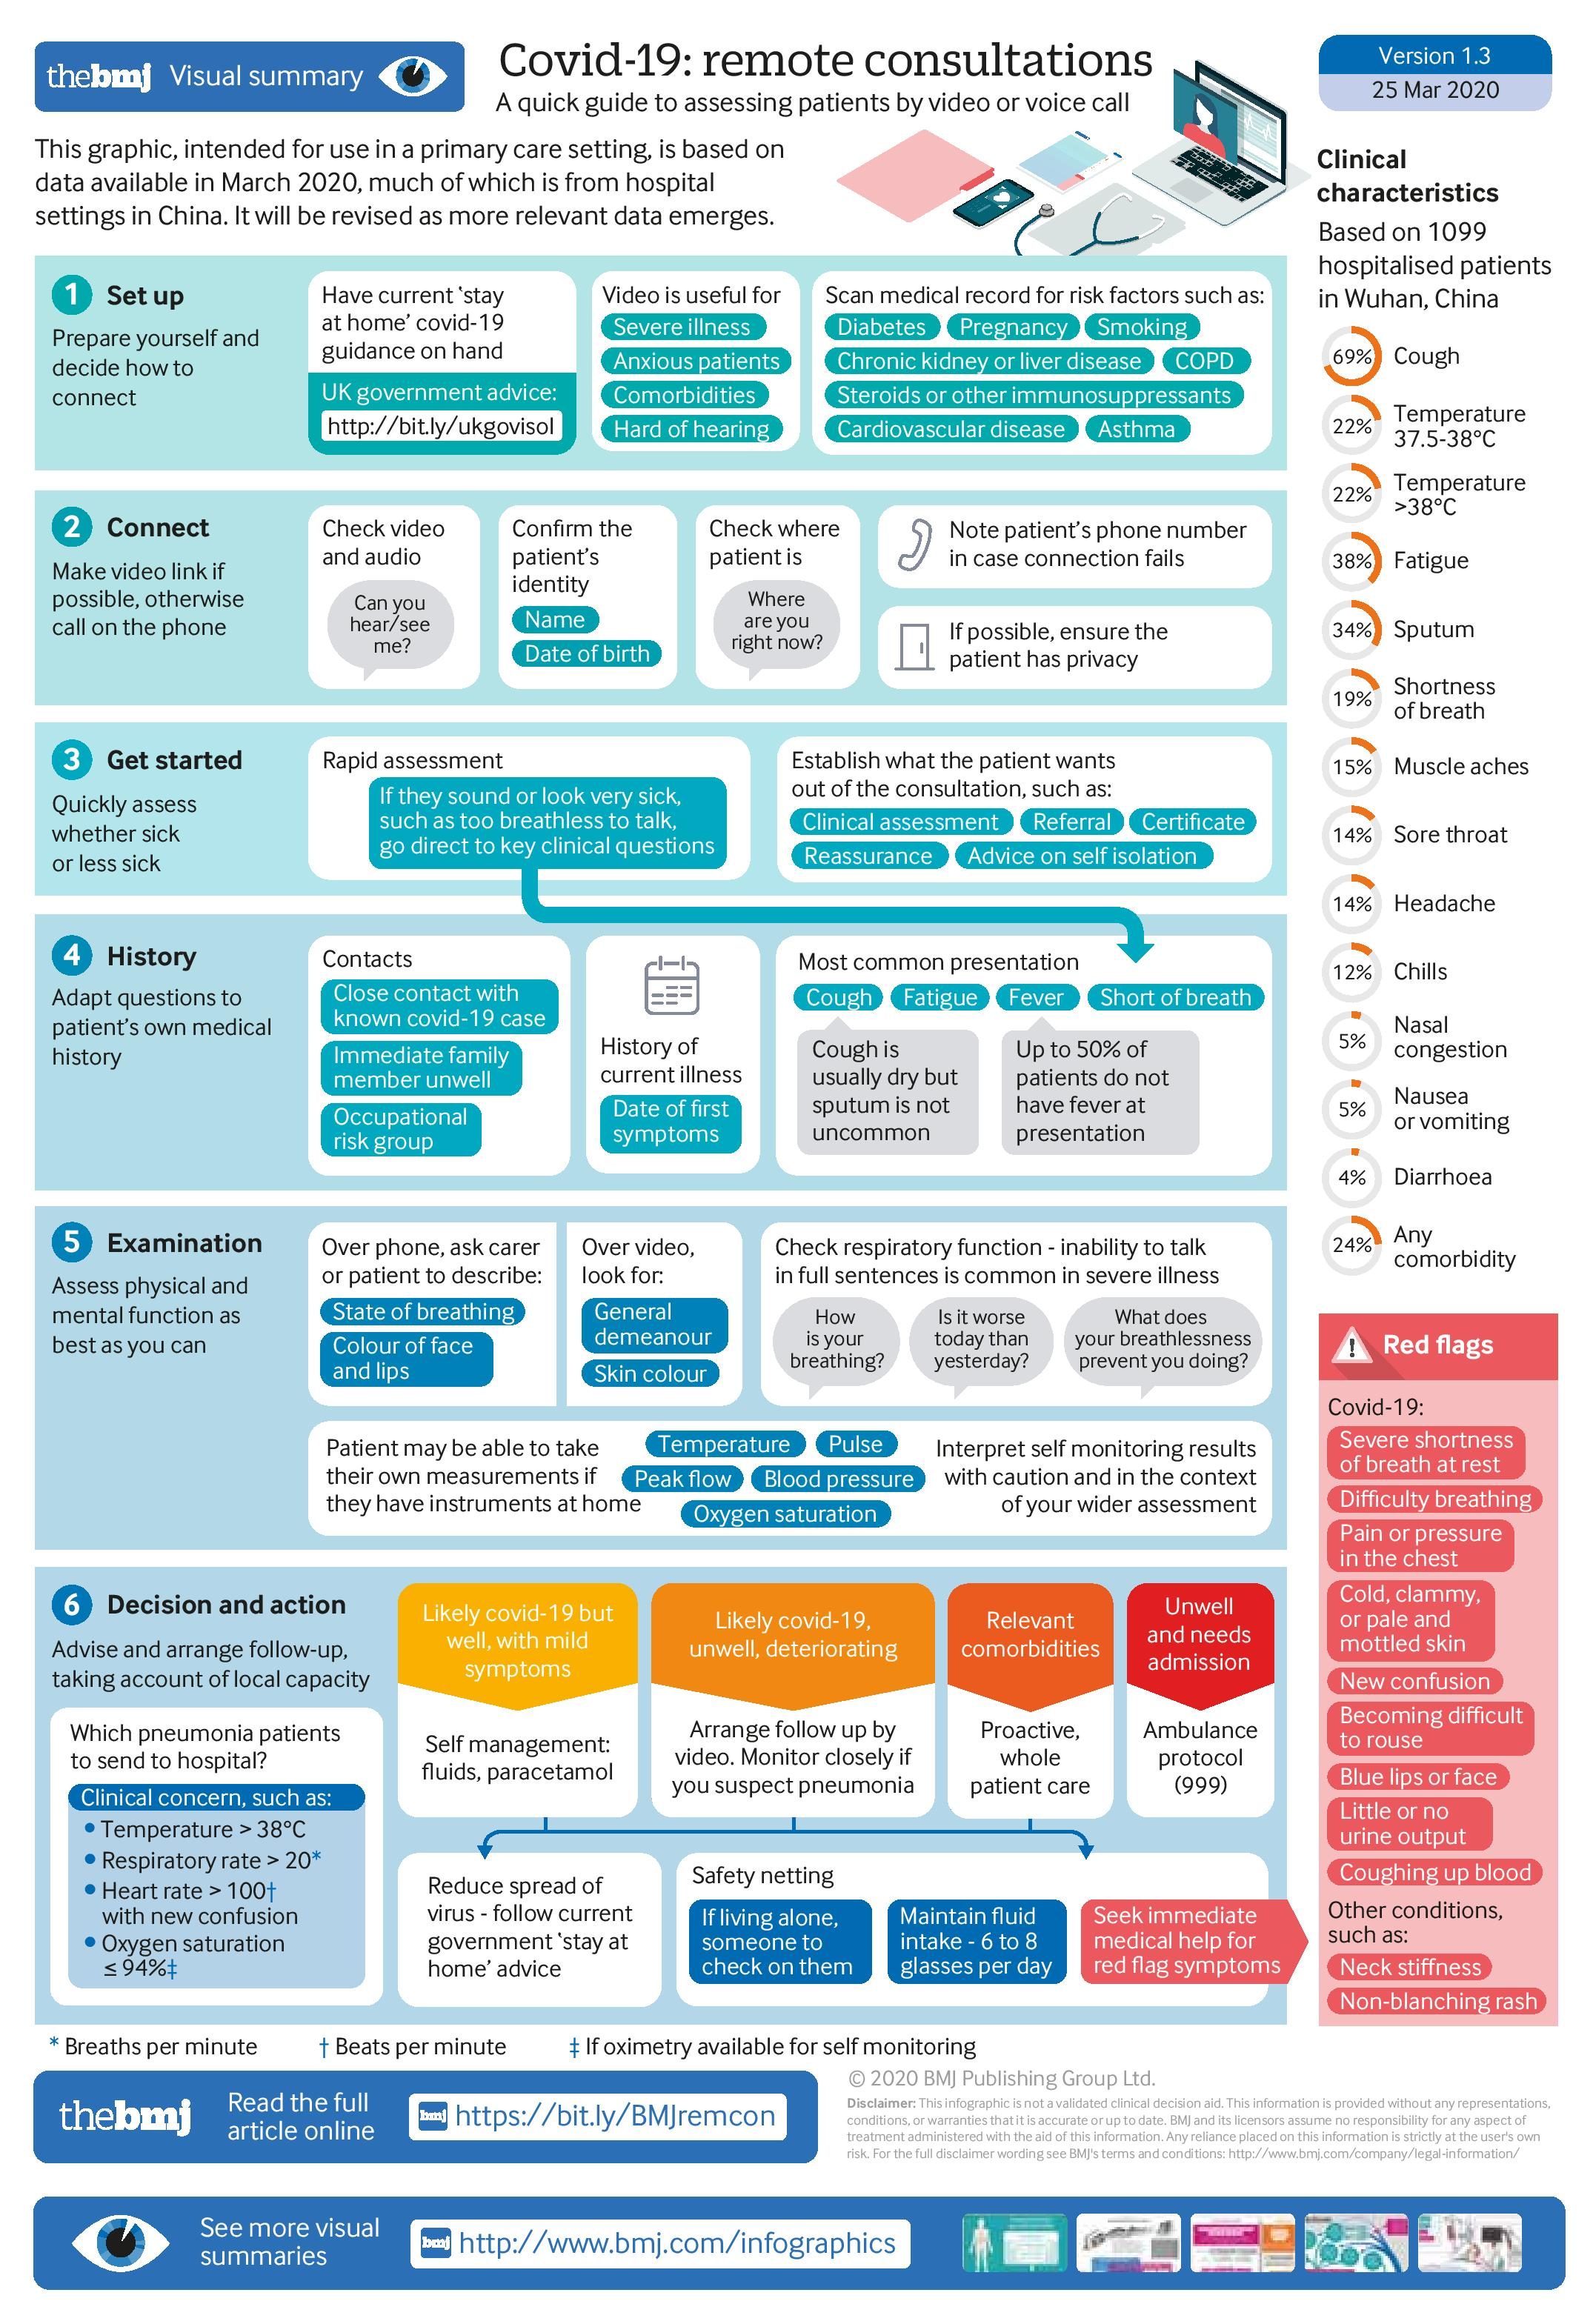 Infographic from BMJ on COVID-19 remote consultations